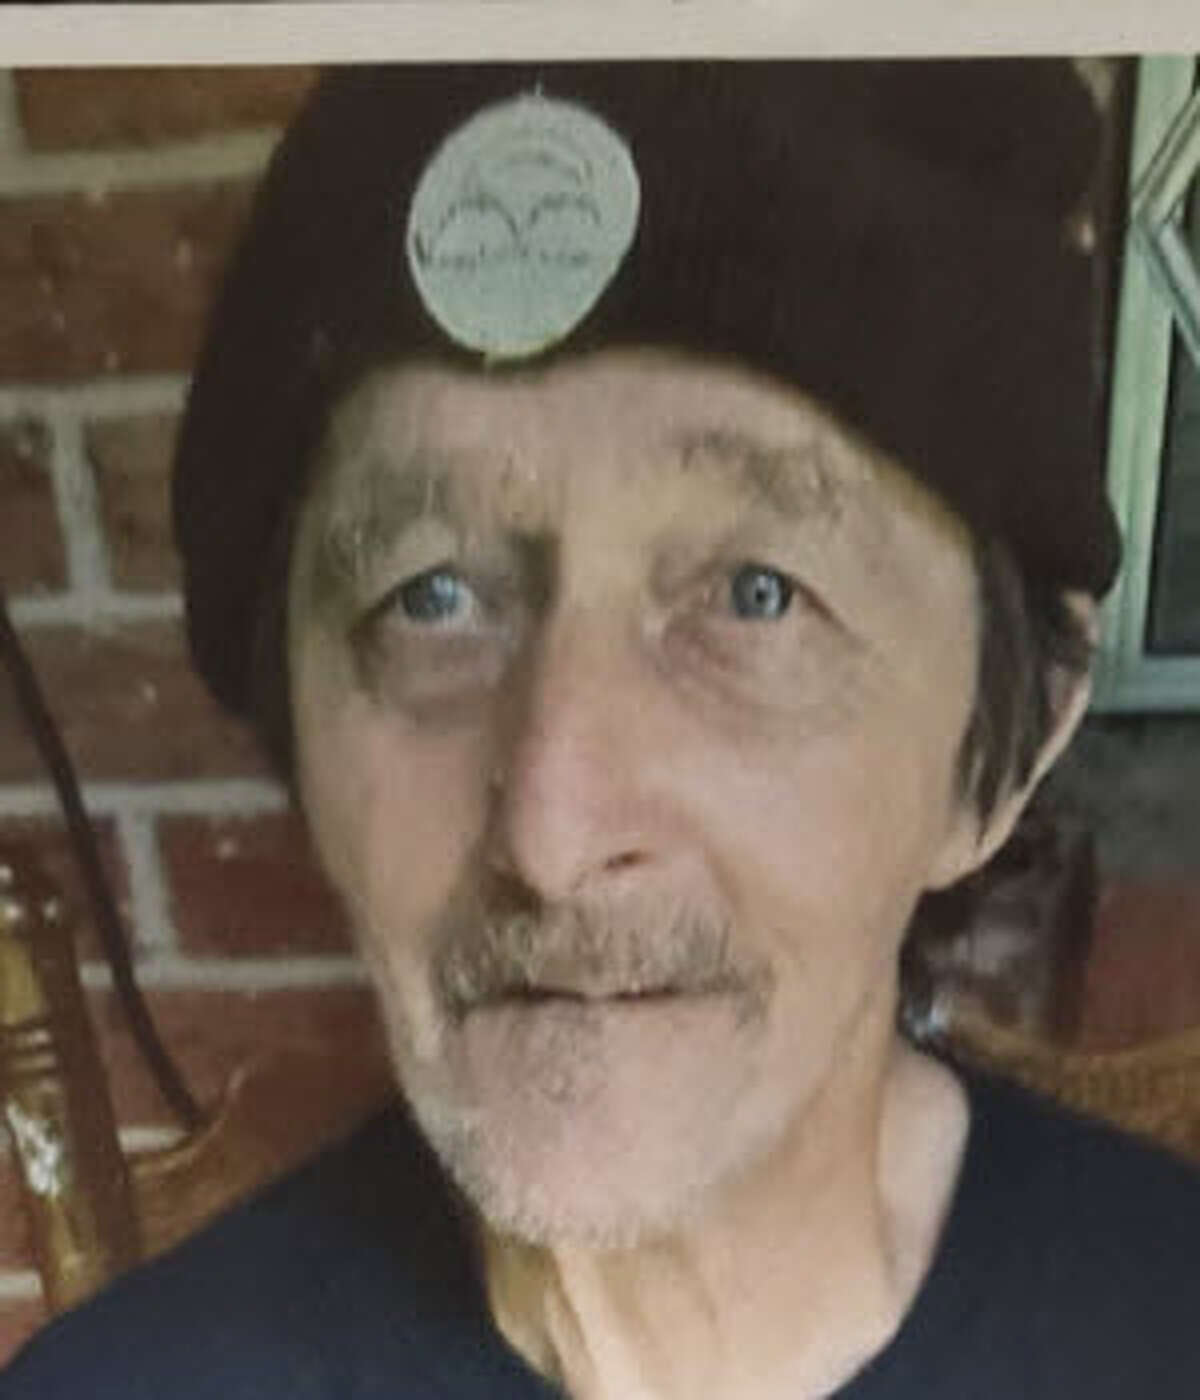 Name: Ziguaros Kokoriss Date of birth: June 7, 1924 Last seen: June 9, 2019, in Houston More: Kokoriss was last seen on foot in the 6600 block of Calhoun Road in southeast Houston. He was last seen wearing a brown beanie, gray shirt, blue jeans and gray and white New Balance tennis shoes. He also utilizes a walker. He may be attempting to travel to Louisiana.